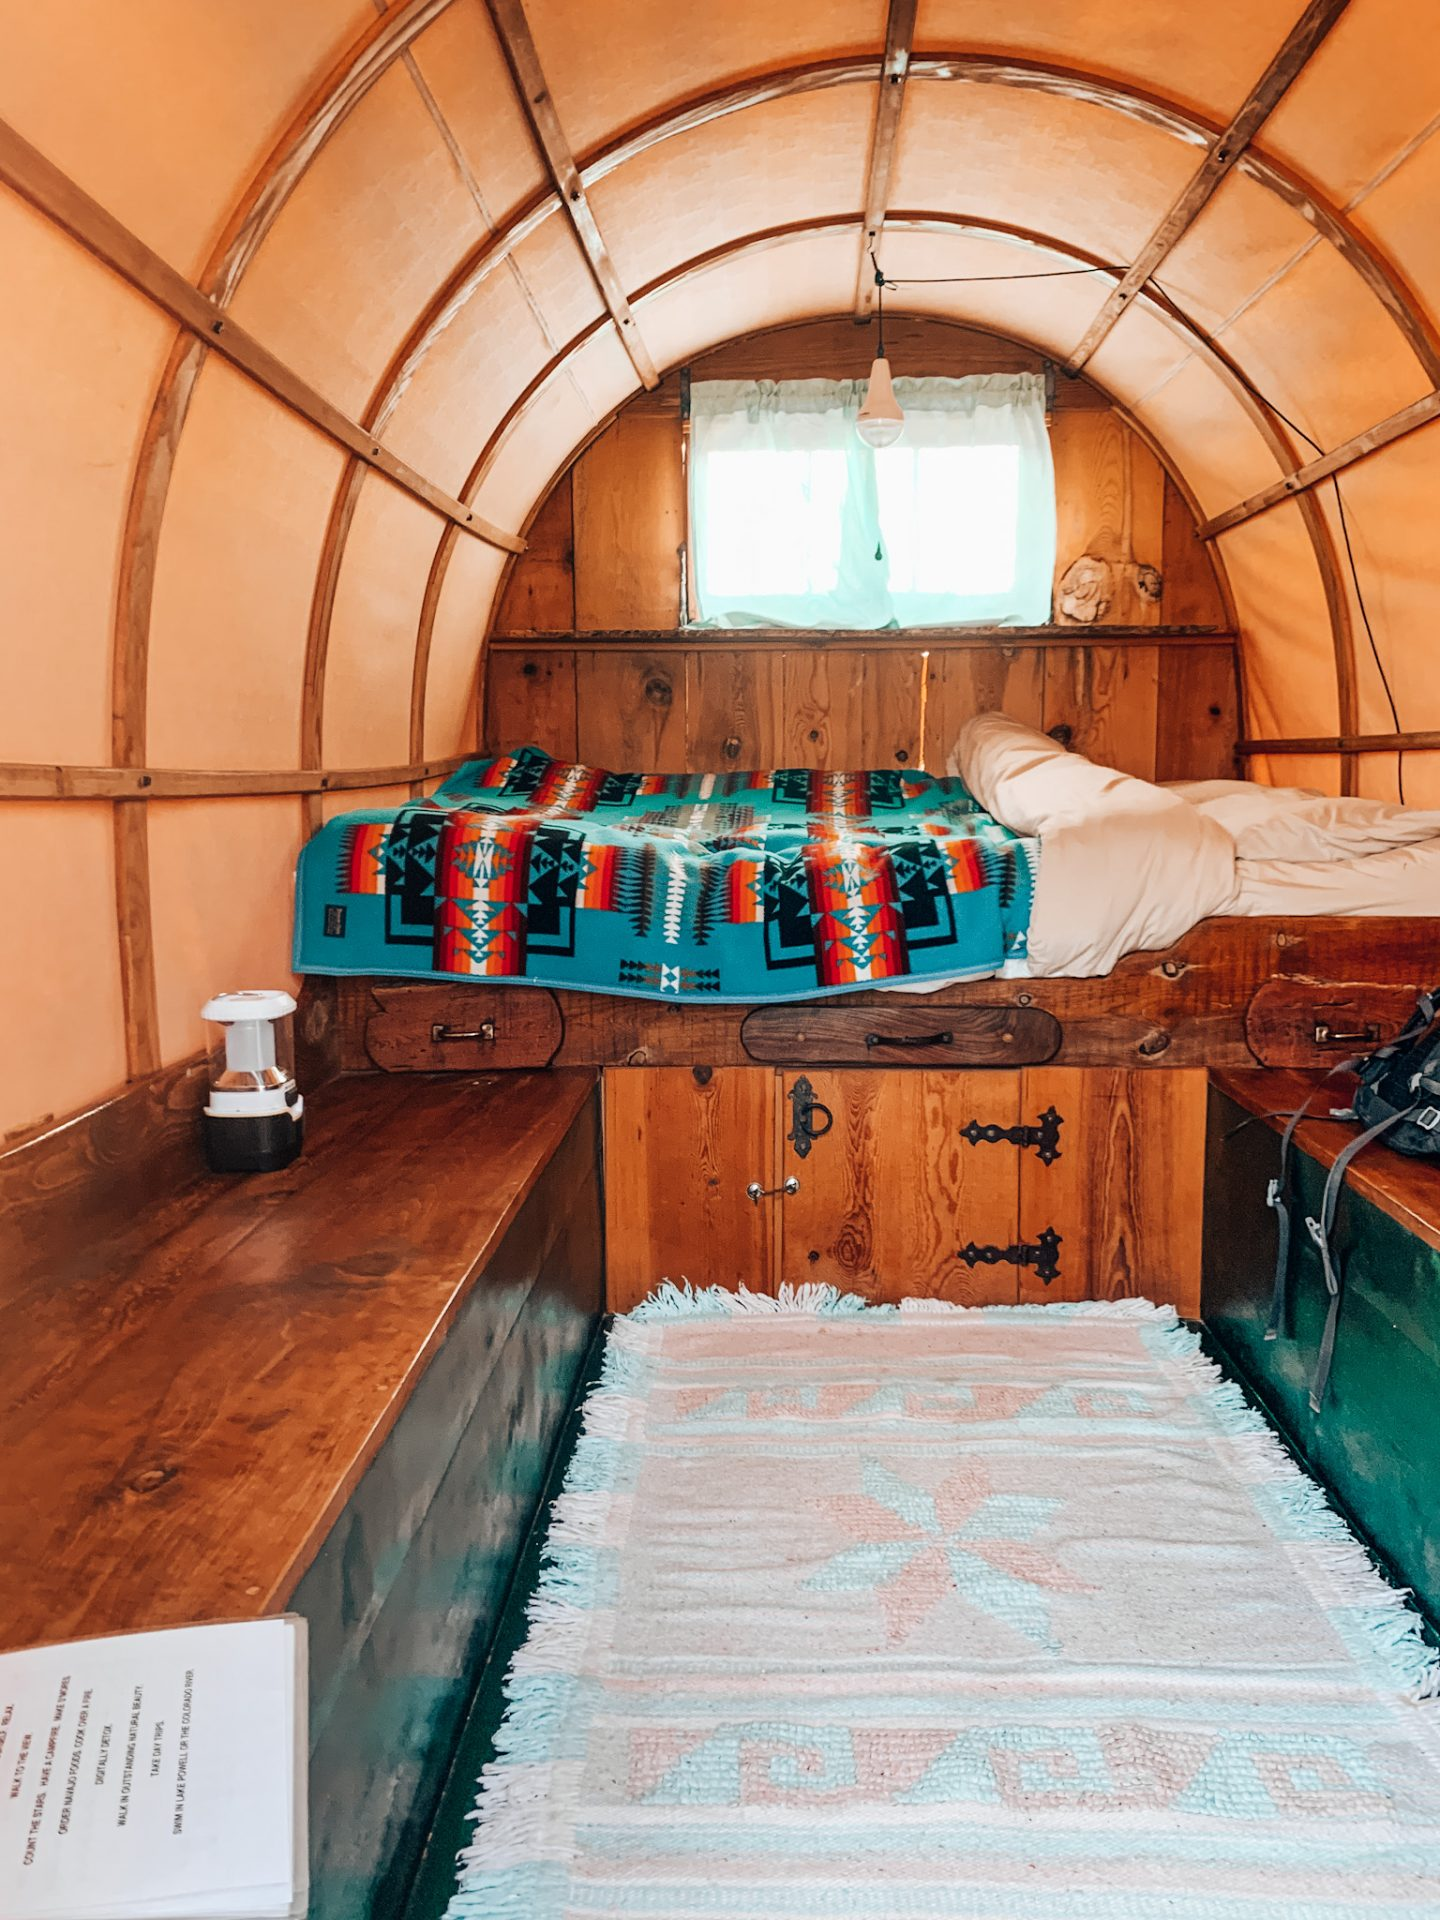 Inside the wagon at the eco-resort